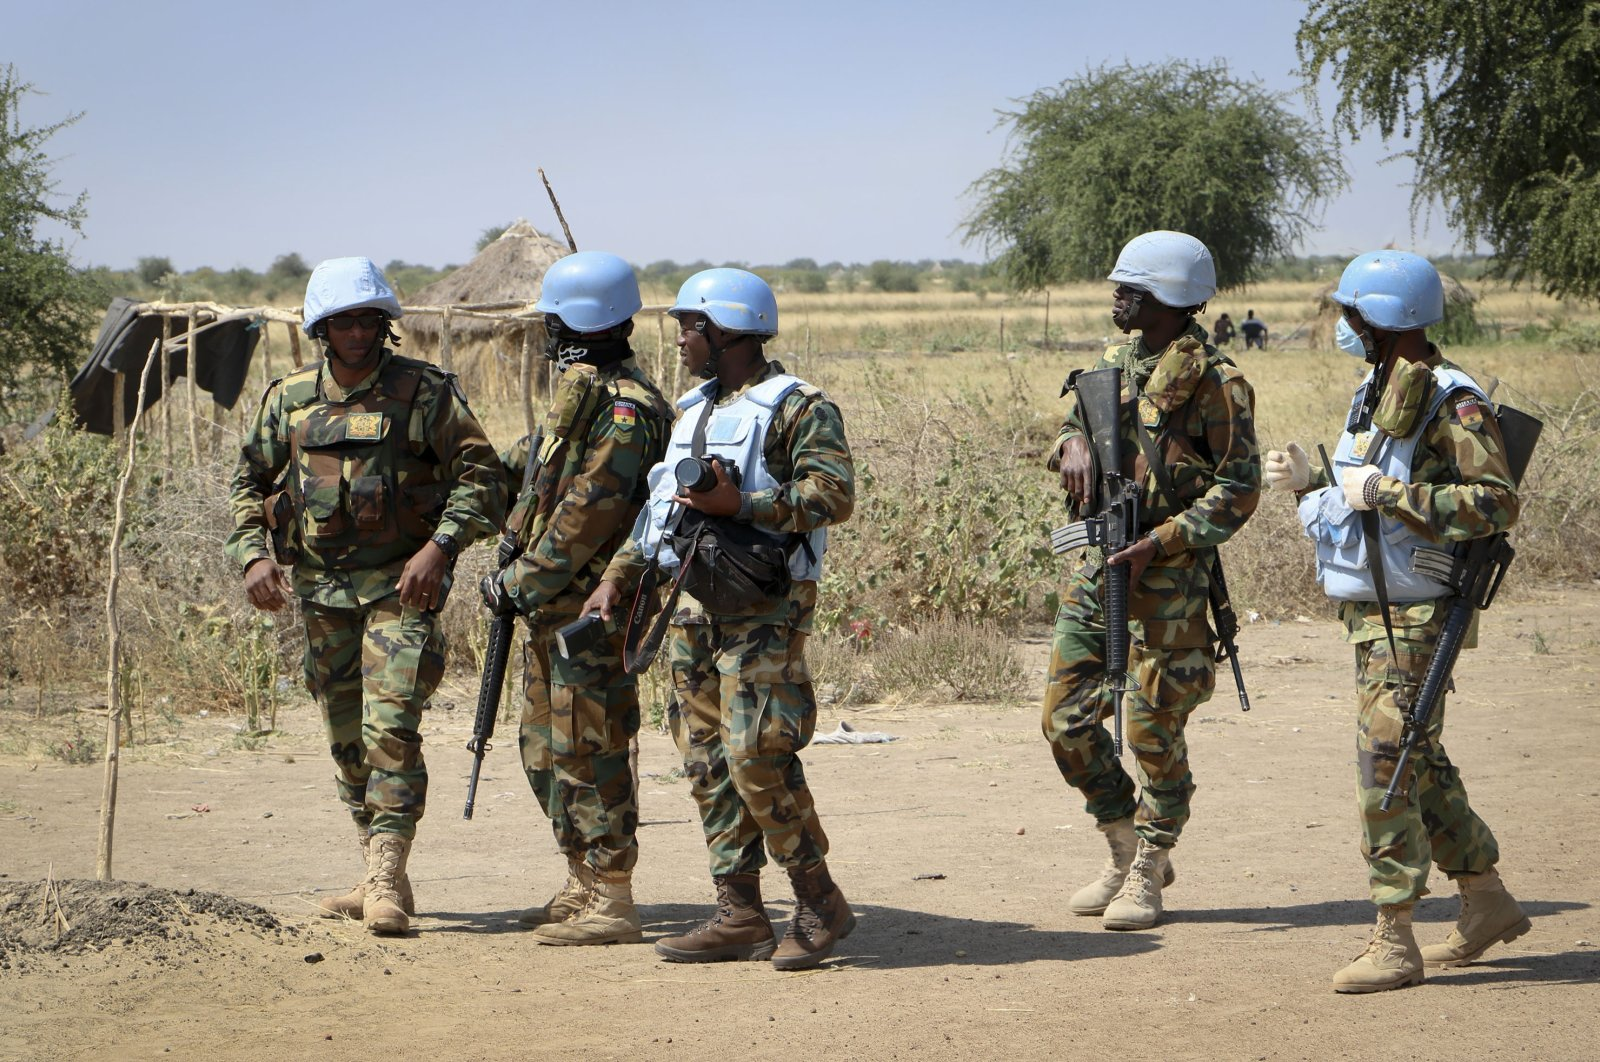 UN peacekeepers make a patrol in the village of Nhialdiu, part of an increase in patrols since an increase of reports of violent attacks on the road from Bentiu to Nhialdu in South Sudan, Dec. 7, 2018. (AP Photo)